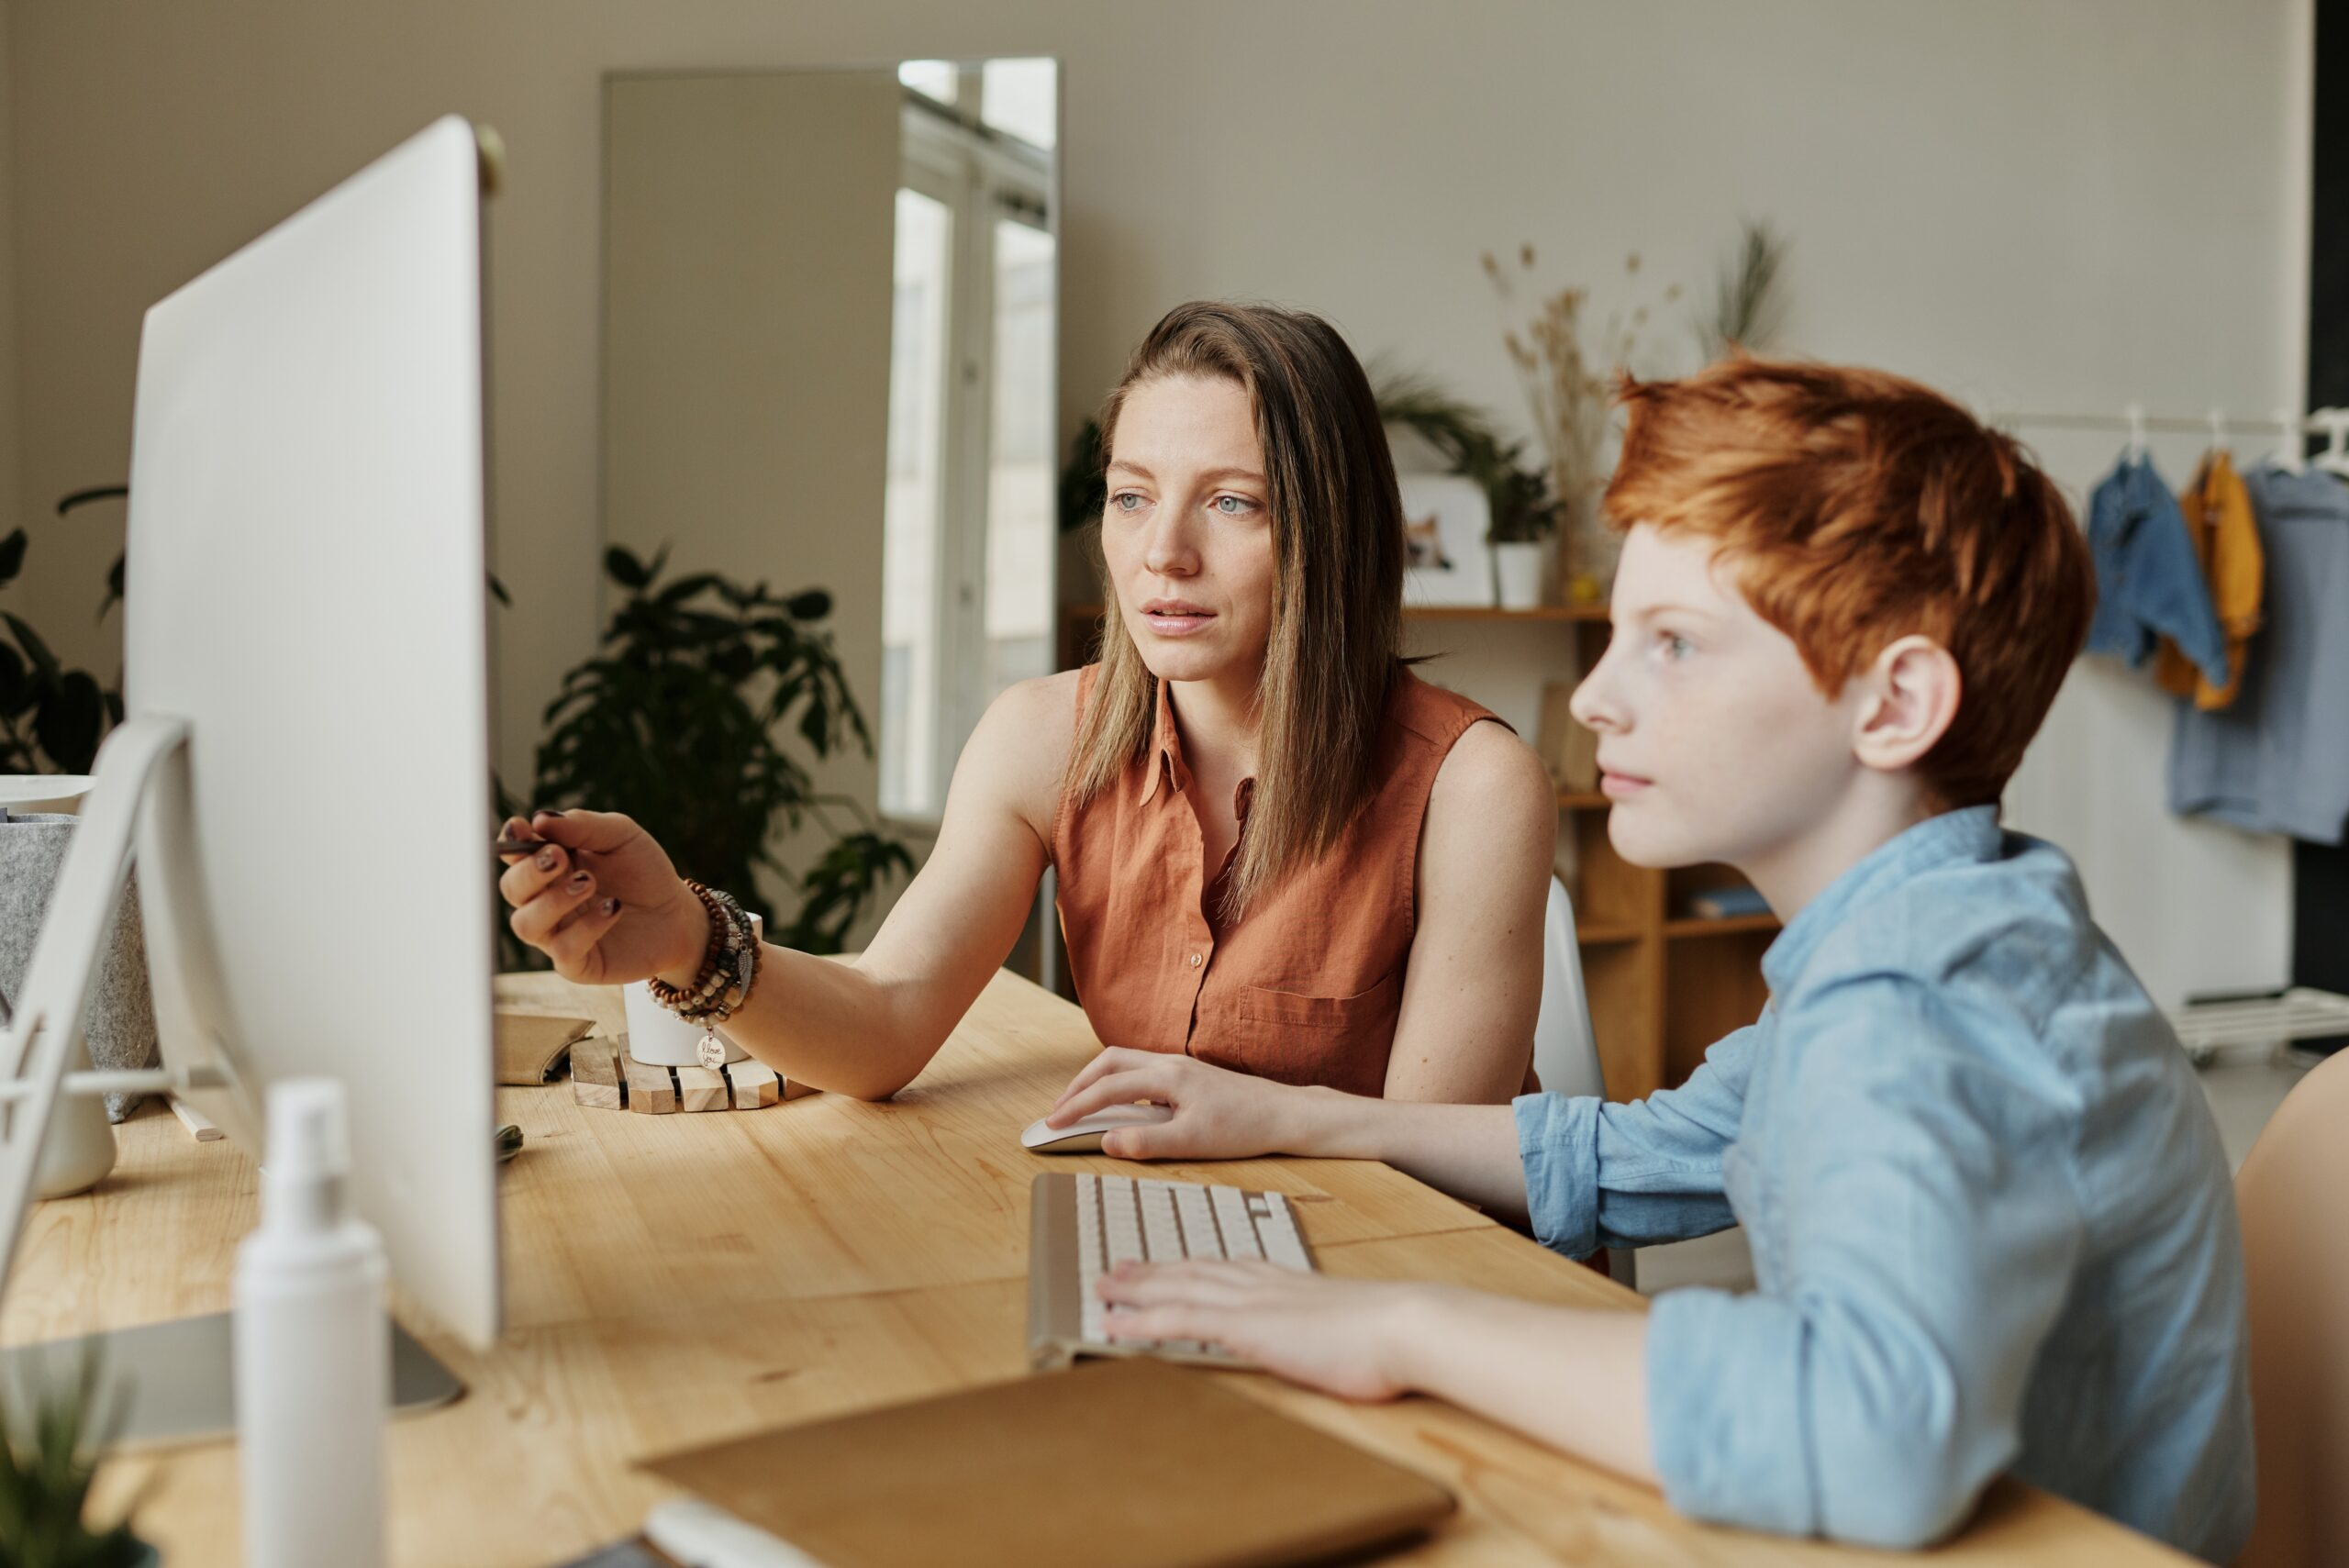 woman in orange shirt and red headed boy in blue shirt watching computer at desk in open room